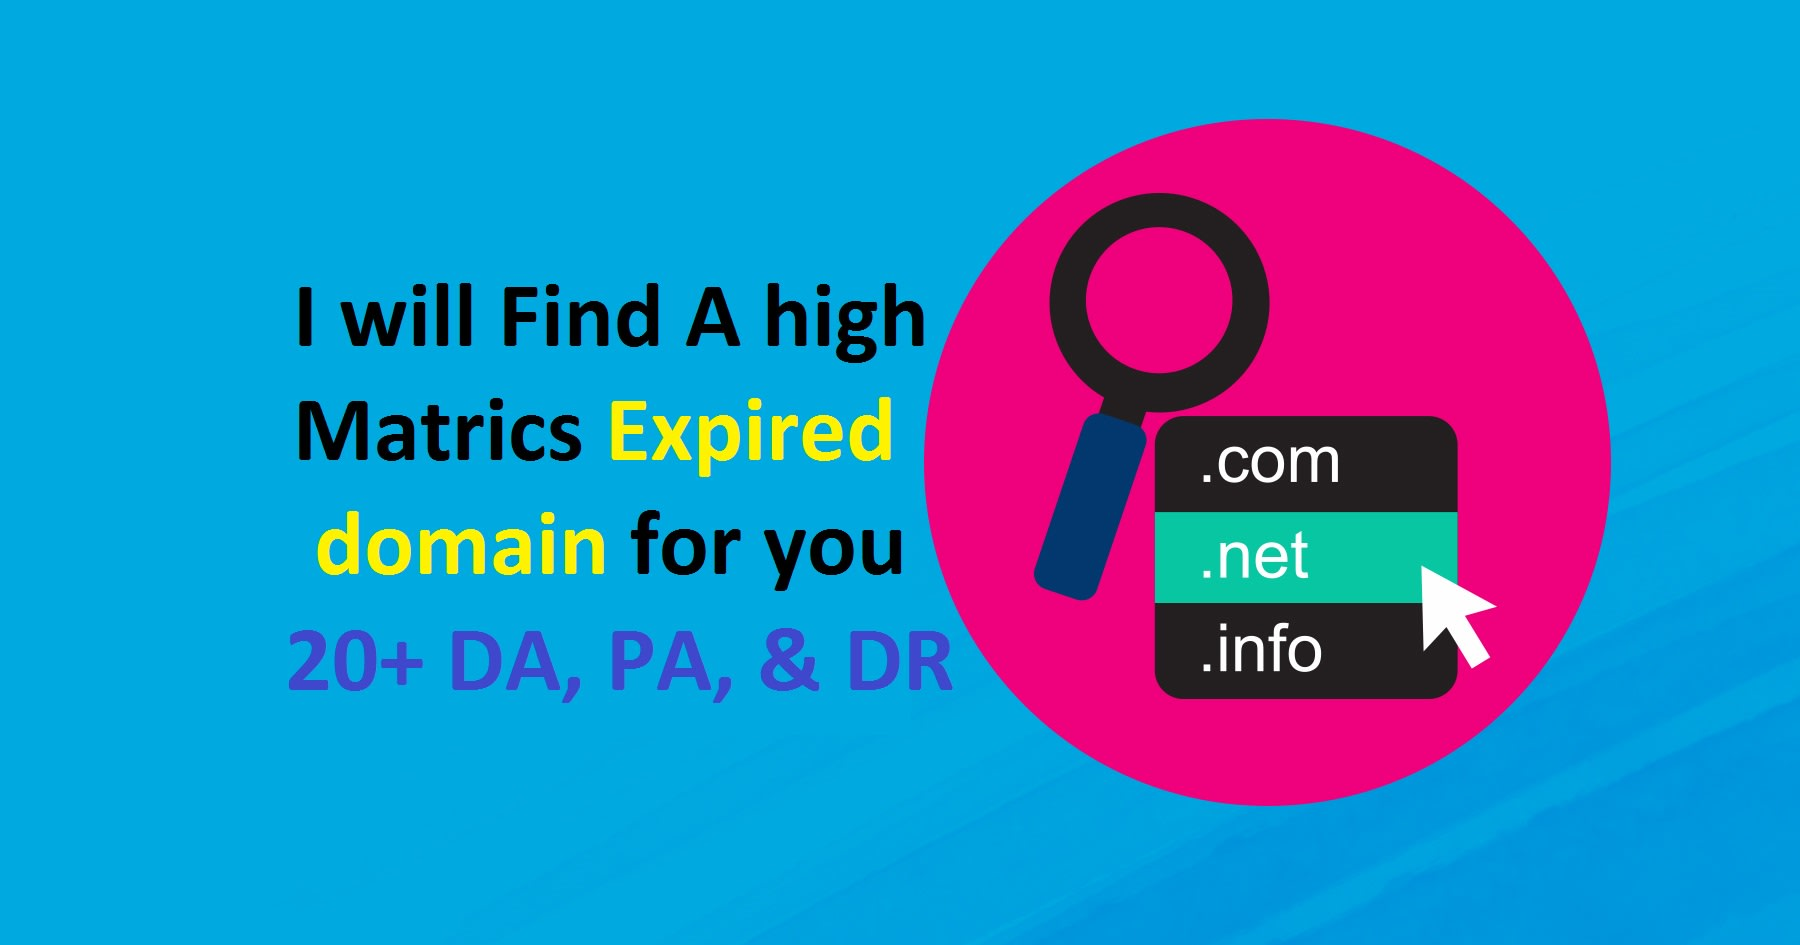 I will do expired domain research for you with high metrics